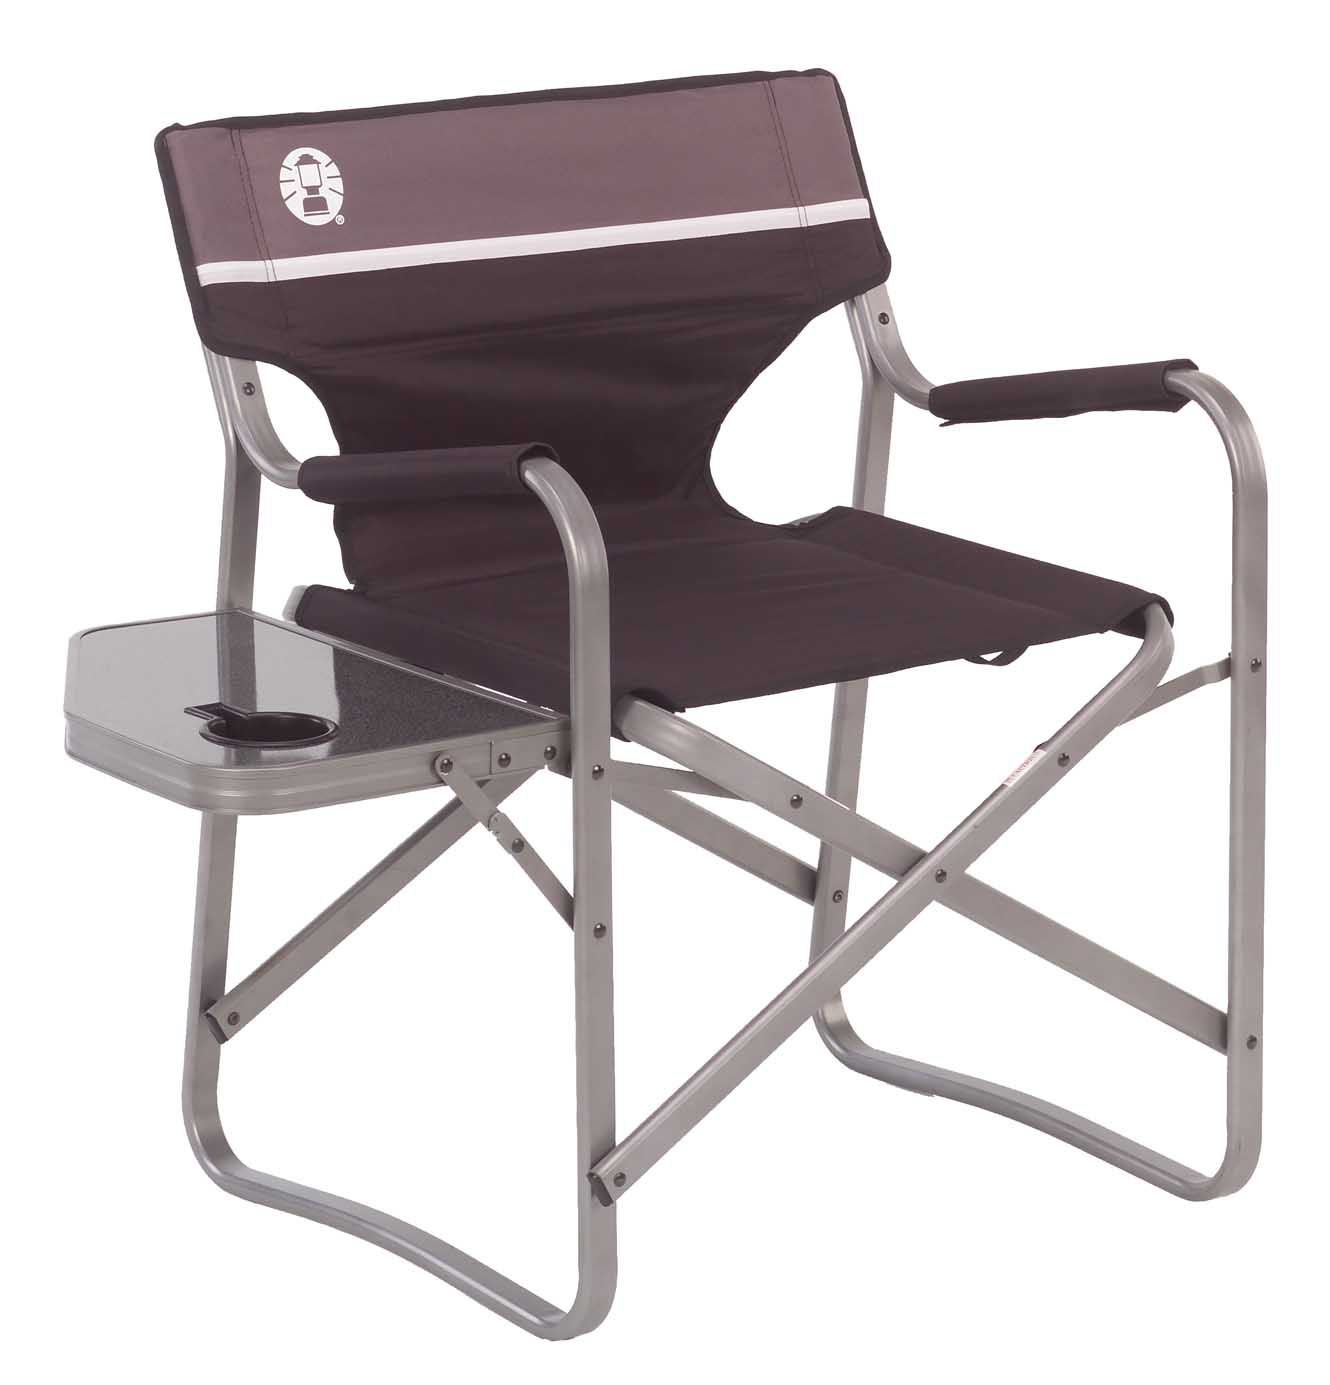 aluminum deck chair camping furniture  u0026 38  games   coleman  rh   coleman